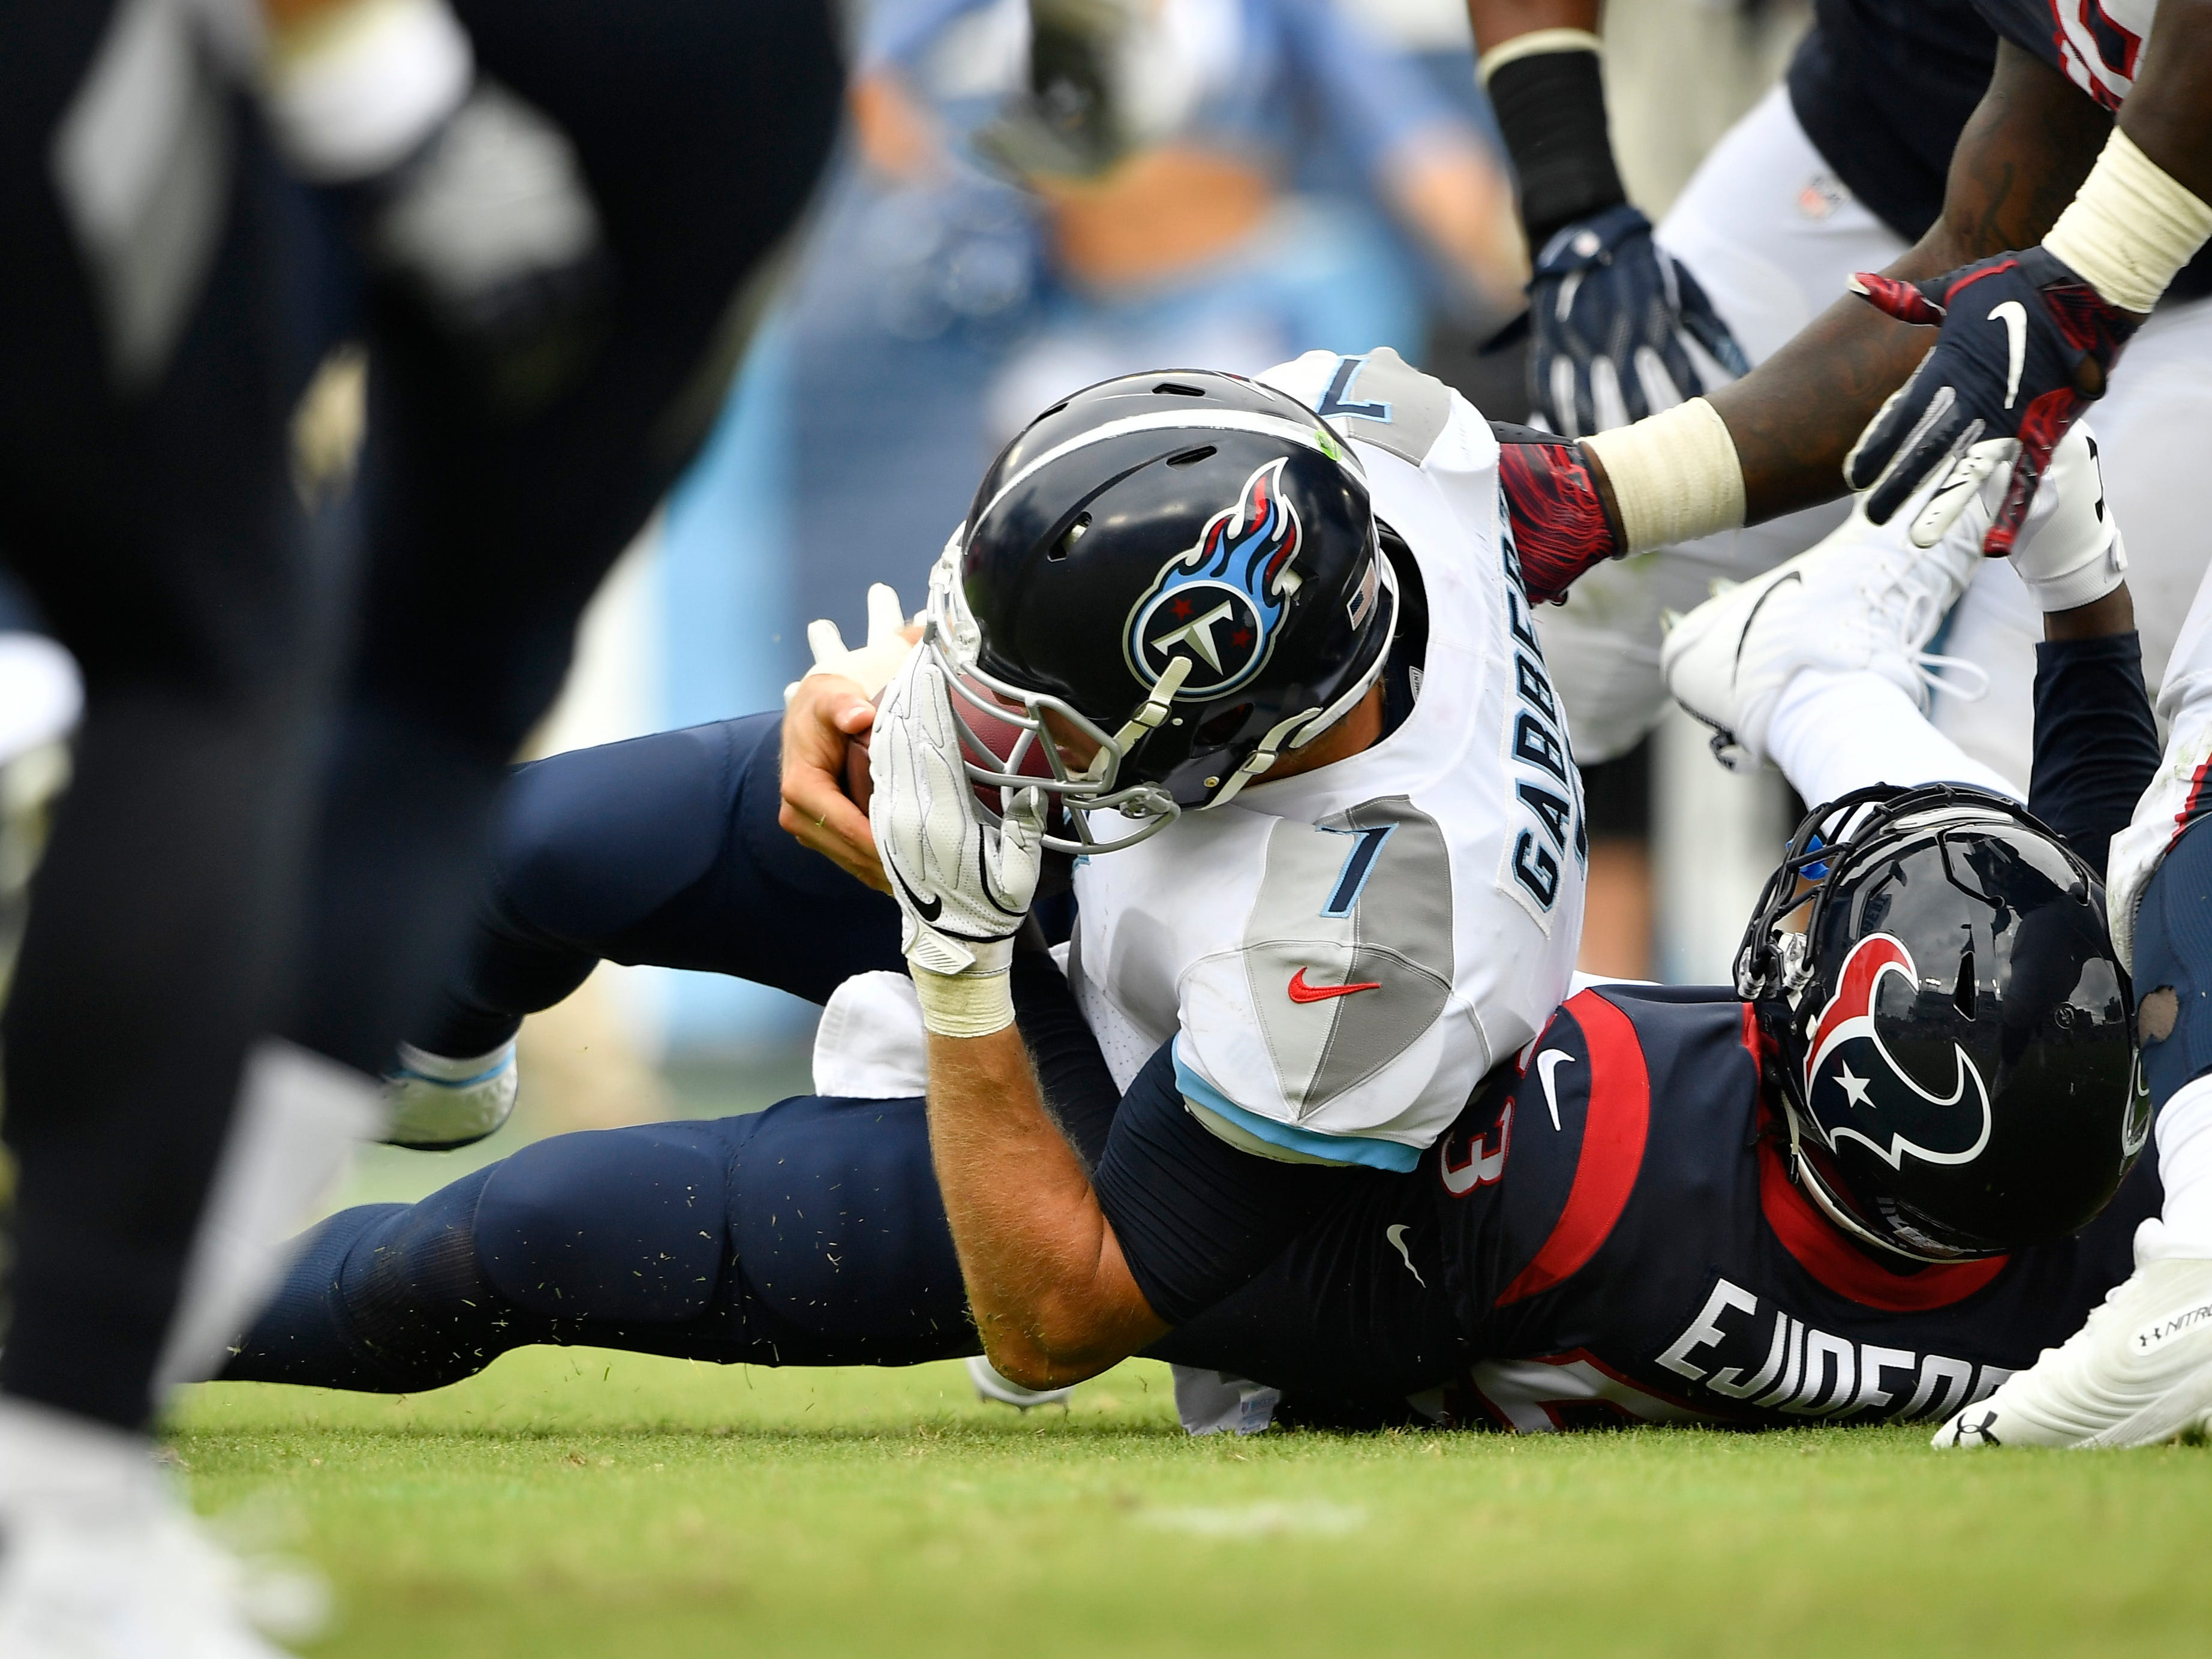 Titans quarterback Blaine Gabbert (7) is sacked in the third quarter at Nissan Stadium Sunday, Sept. 16, 2018, in Nashville, Tenn.